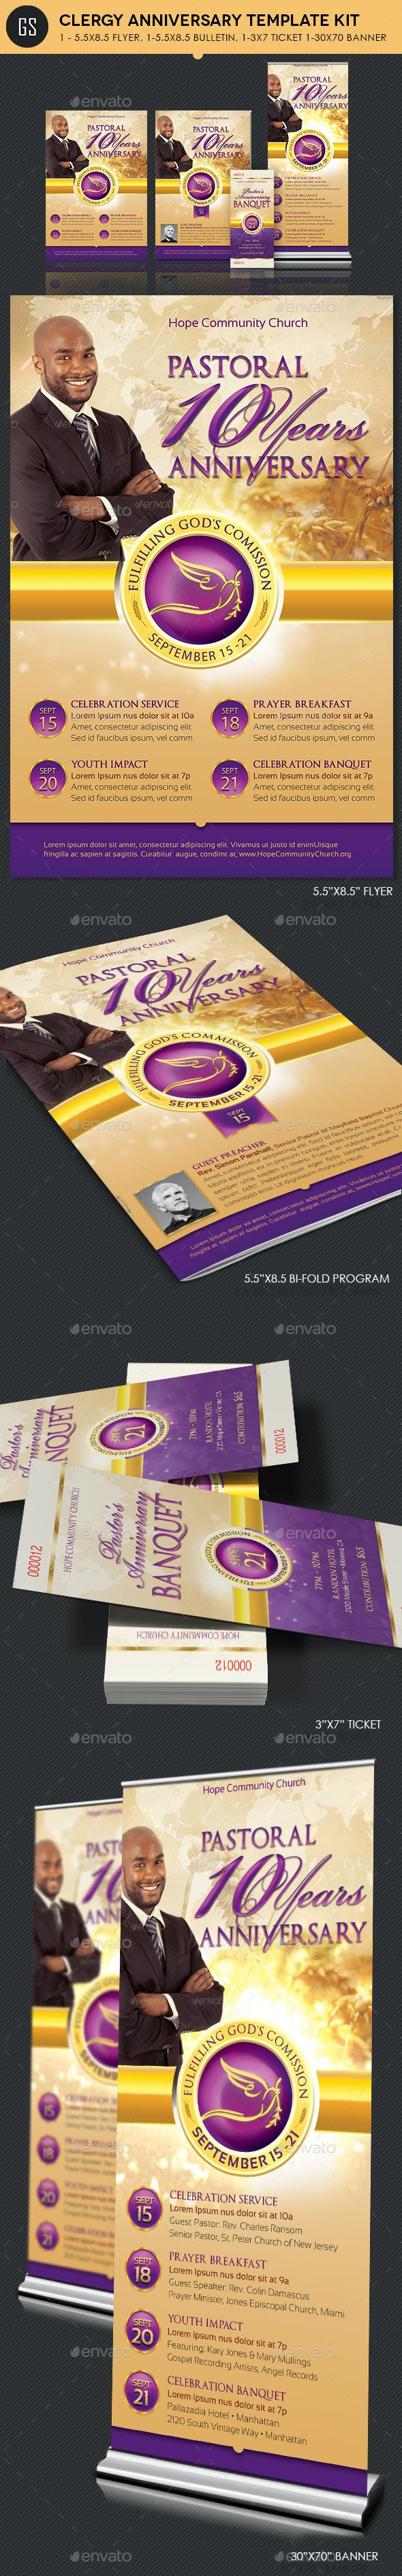 Clergy Anniversary Template Kit - Church Flyers